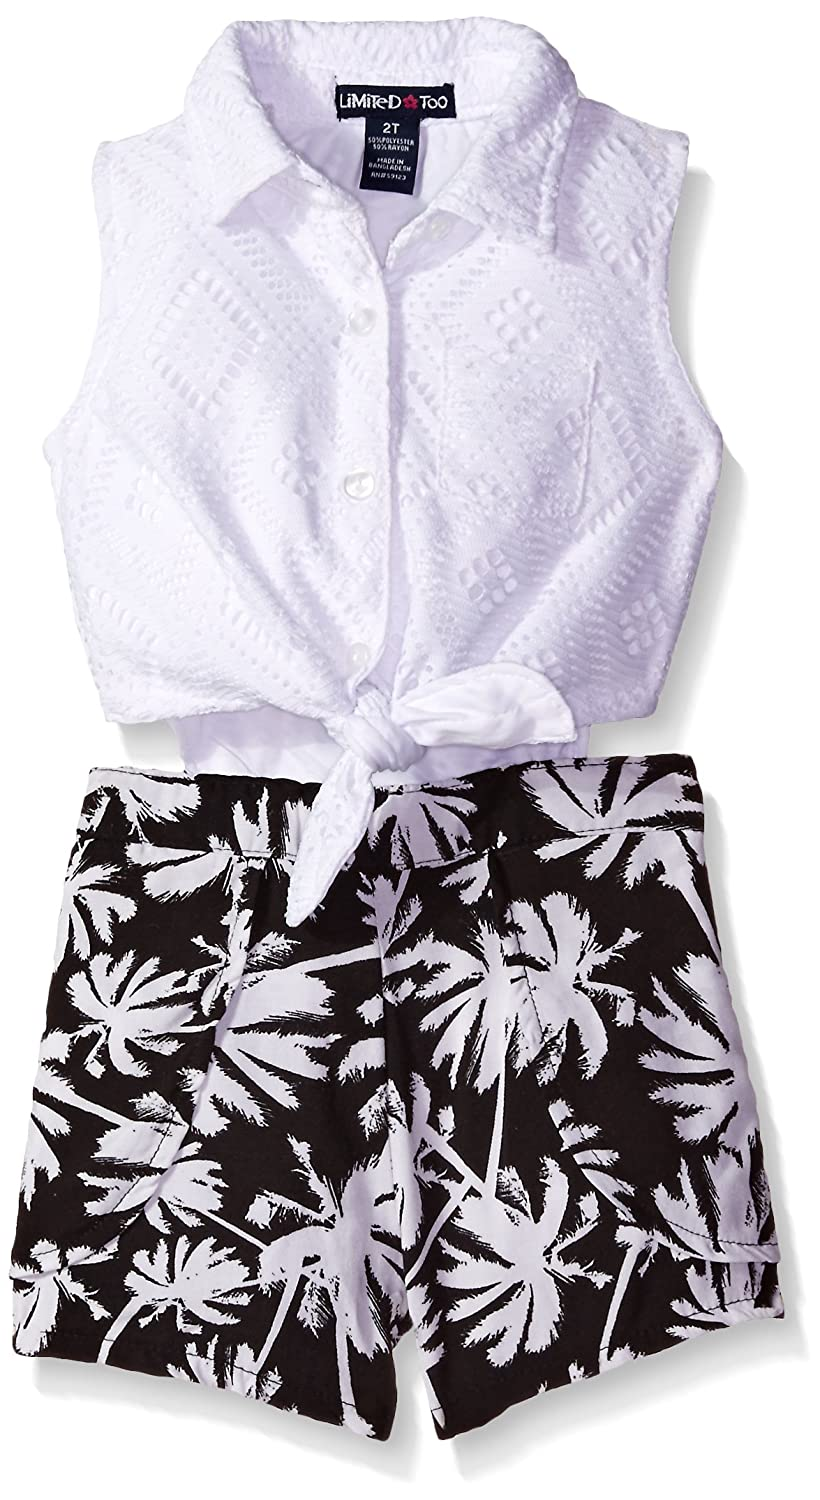 Limited Too Baby and Girls' Solid Lace Sleeveless Top and Palm Trees Print Romper White 4 PE94